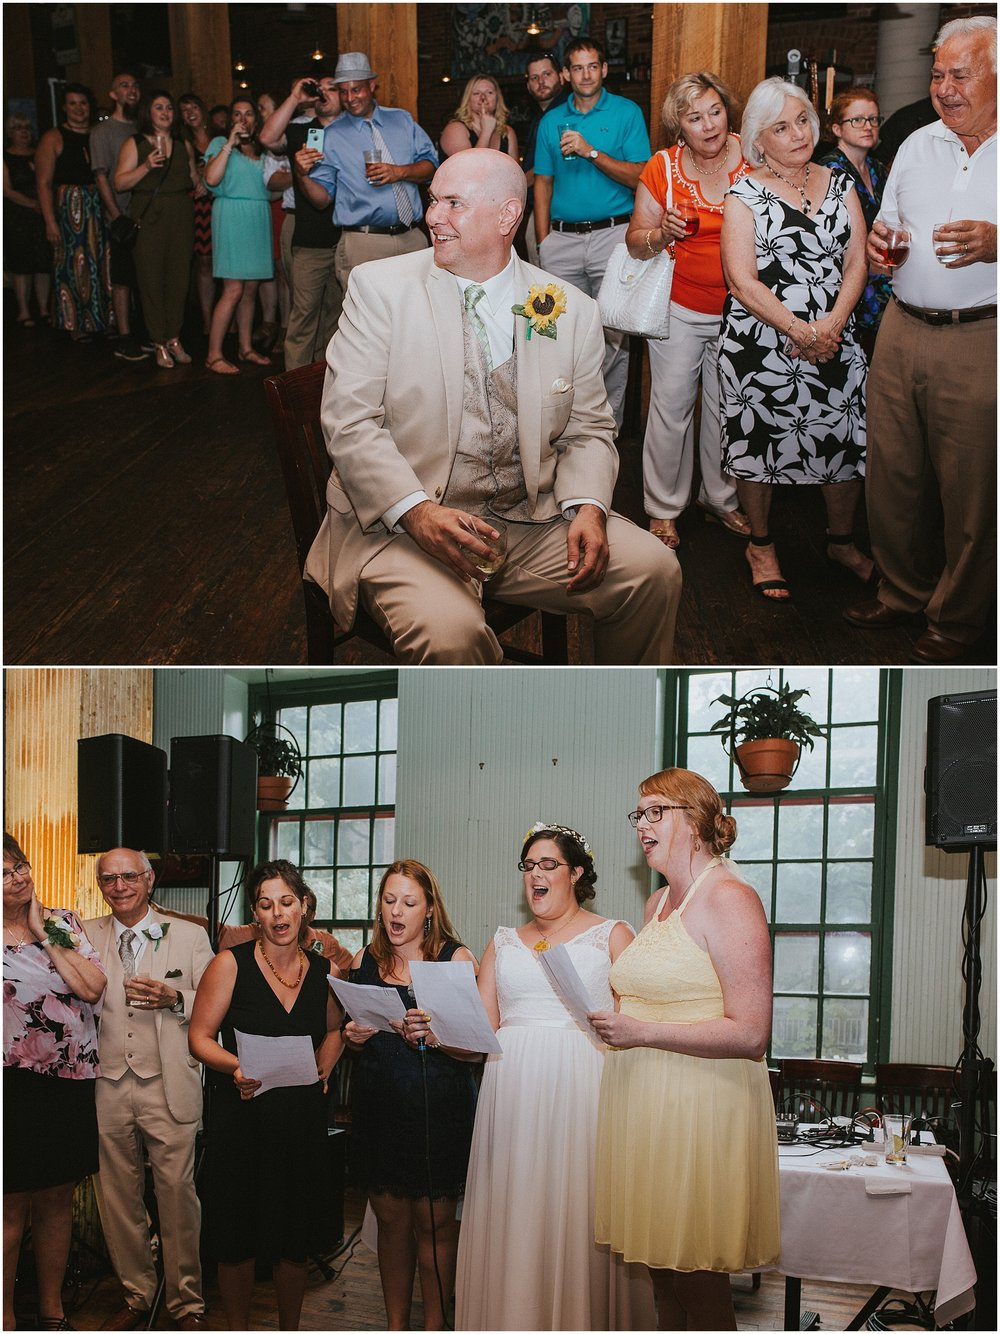 Reading-Pennsylvania-Outdoor-Wedding-DIY-Bride-Groom-Dancing-Laughter-Reception (57).jpg